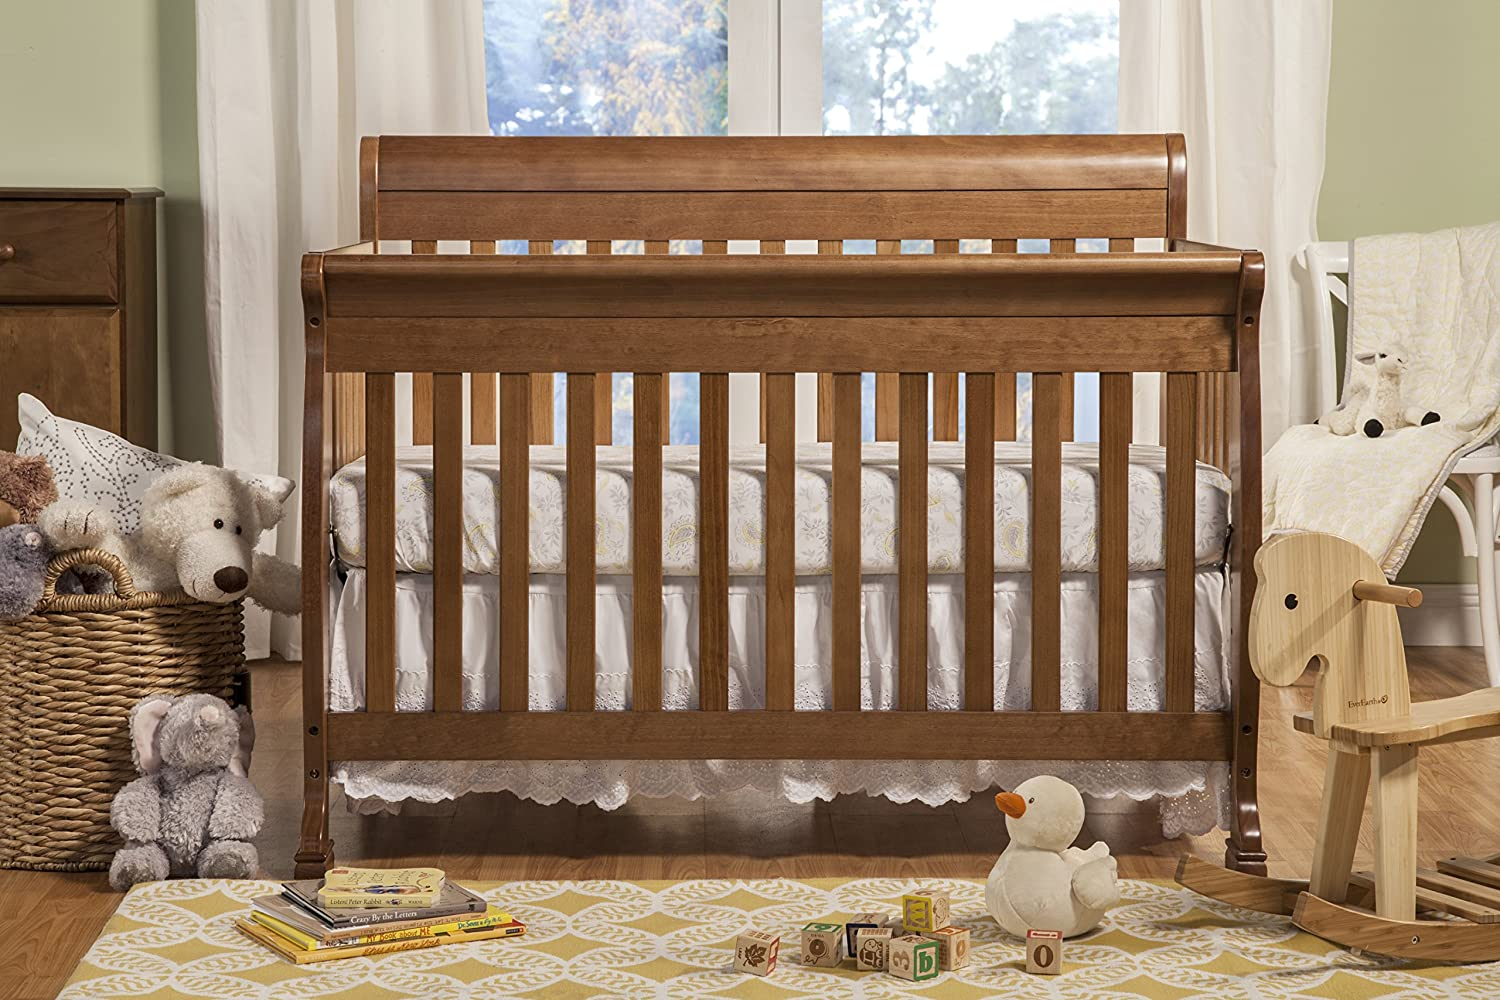 Baby bed hs code - Amazon Com Davinci Kalani 4 In 1 Convertible Crib With Toddler Rail Chestnut Baby